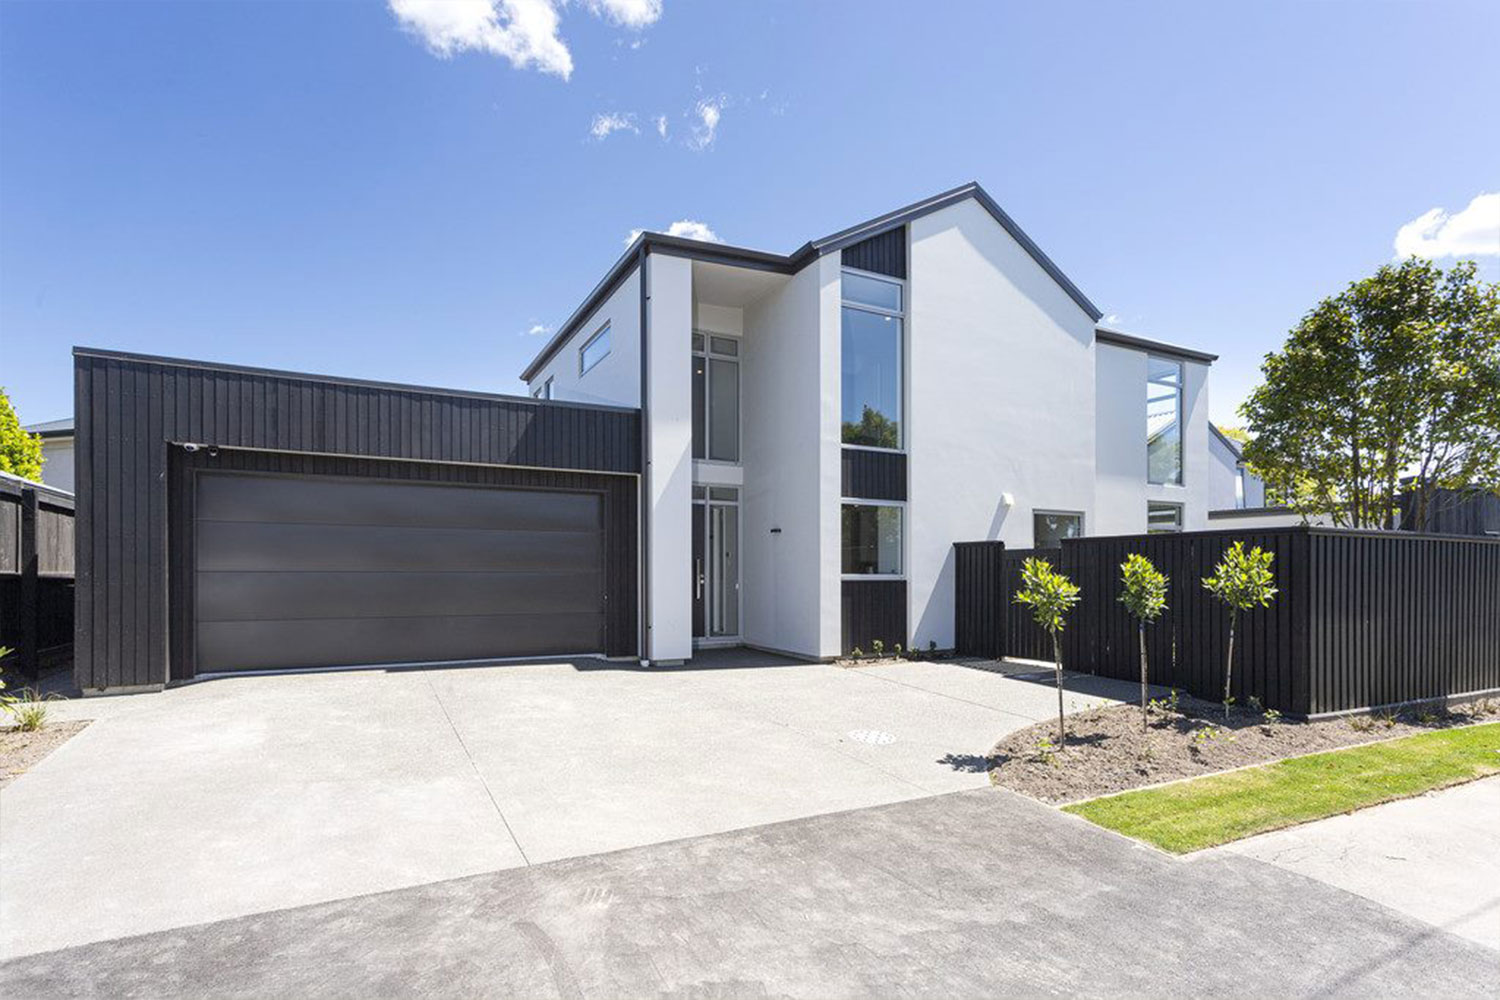 https://www.benchmarkhomes.co.nz/wp-content/uploads/2020/07/Projects-Becket-2-1500-x-1000-High-Res.jpg